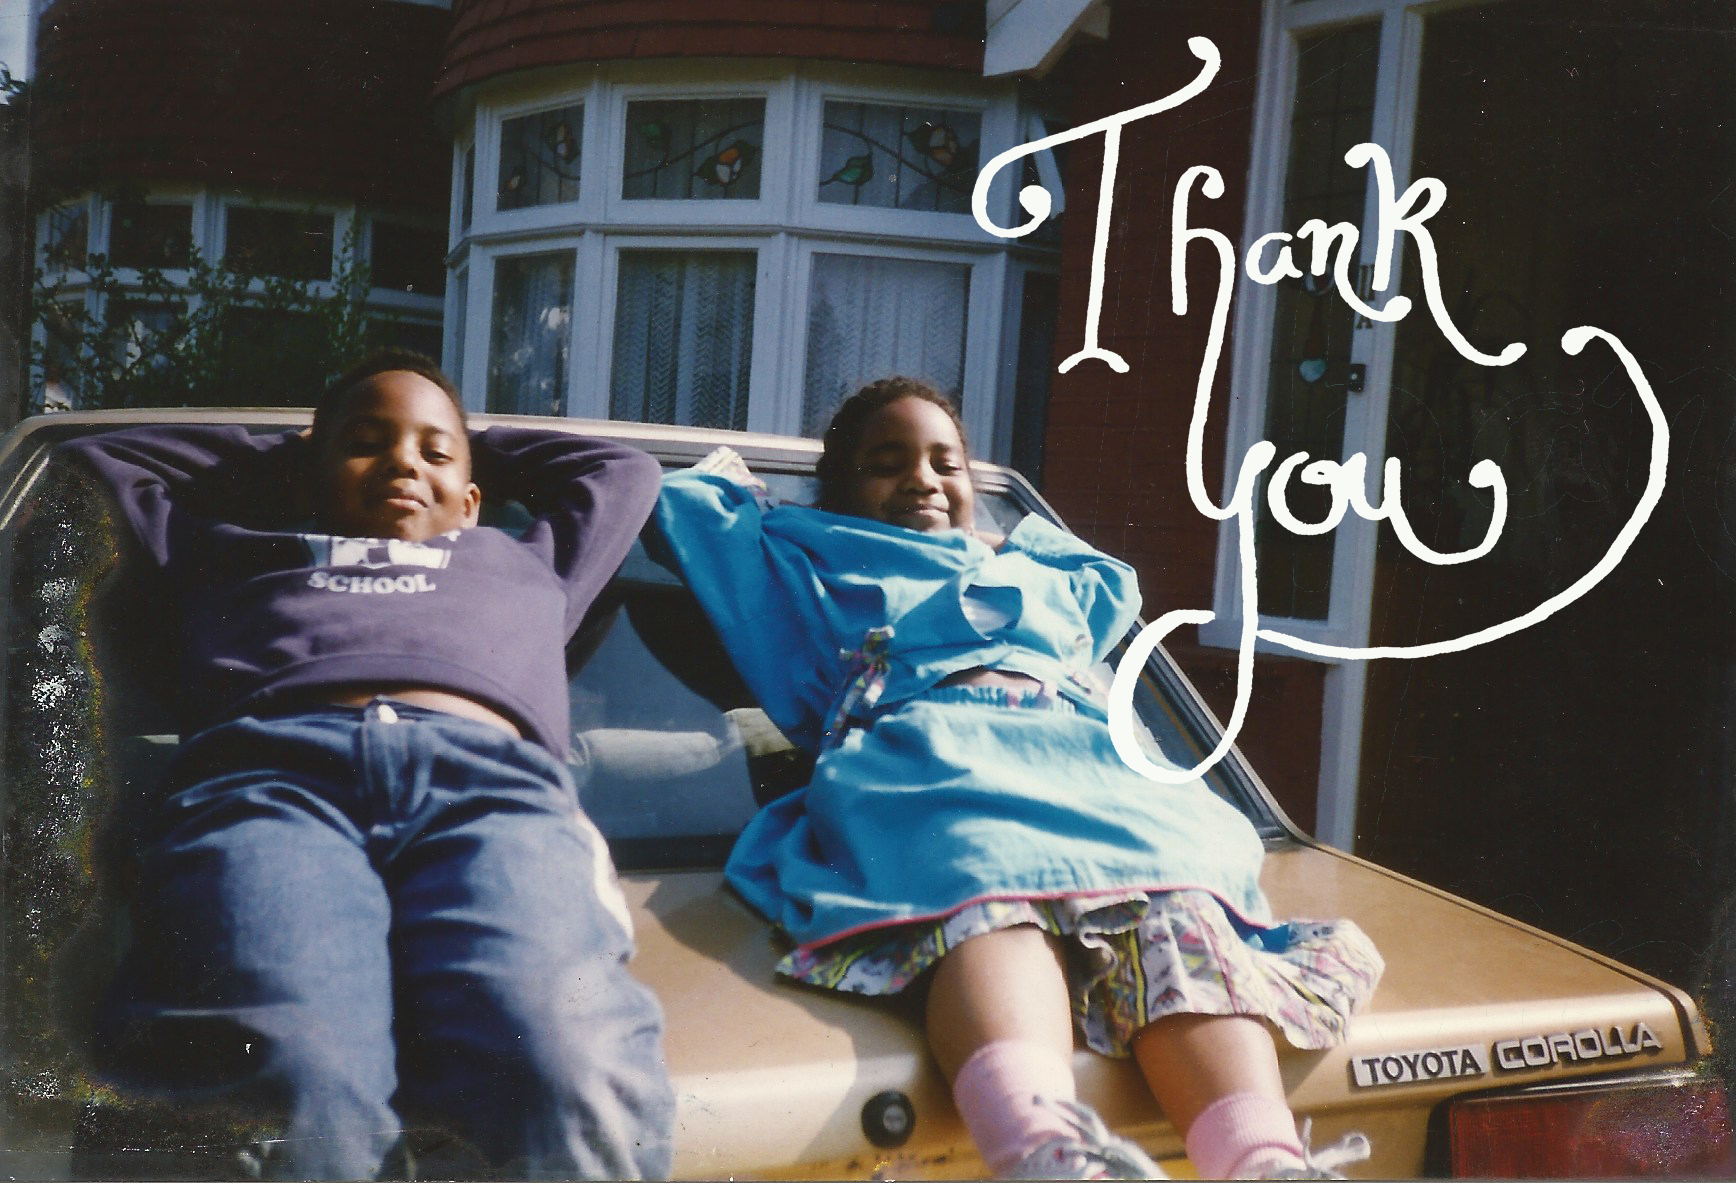 Brother-sister-sibling-vintage-90s-thank-you-national-stationery-week